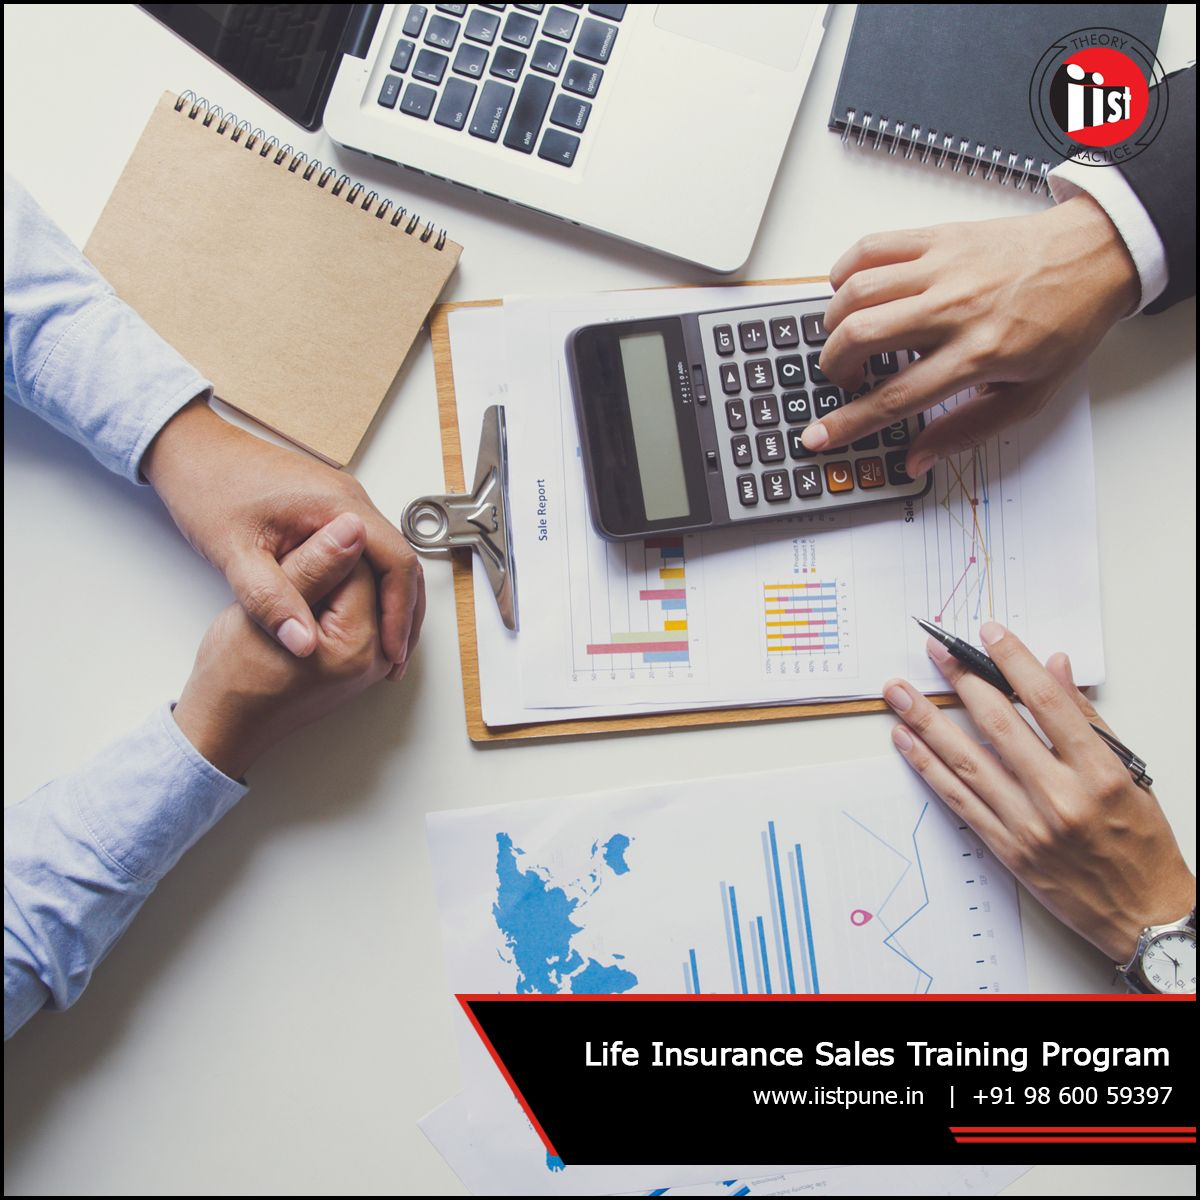 Iist Is One Of The Oldest Insurance Sales Training Institute Based